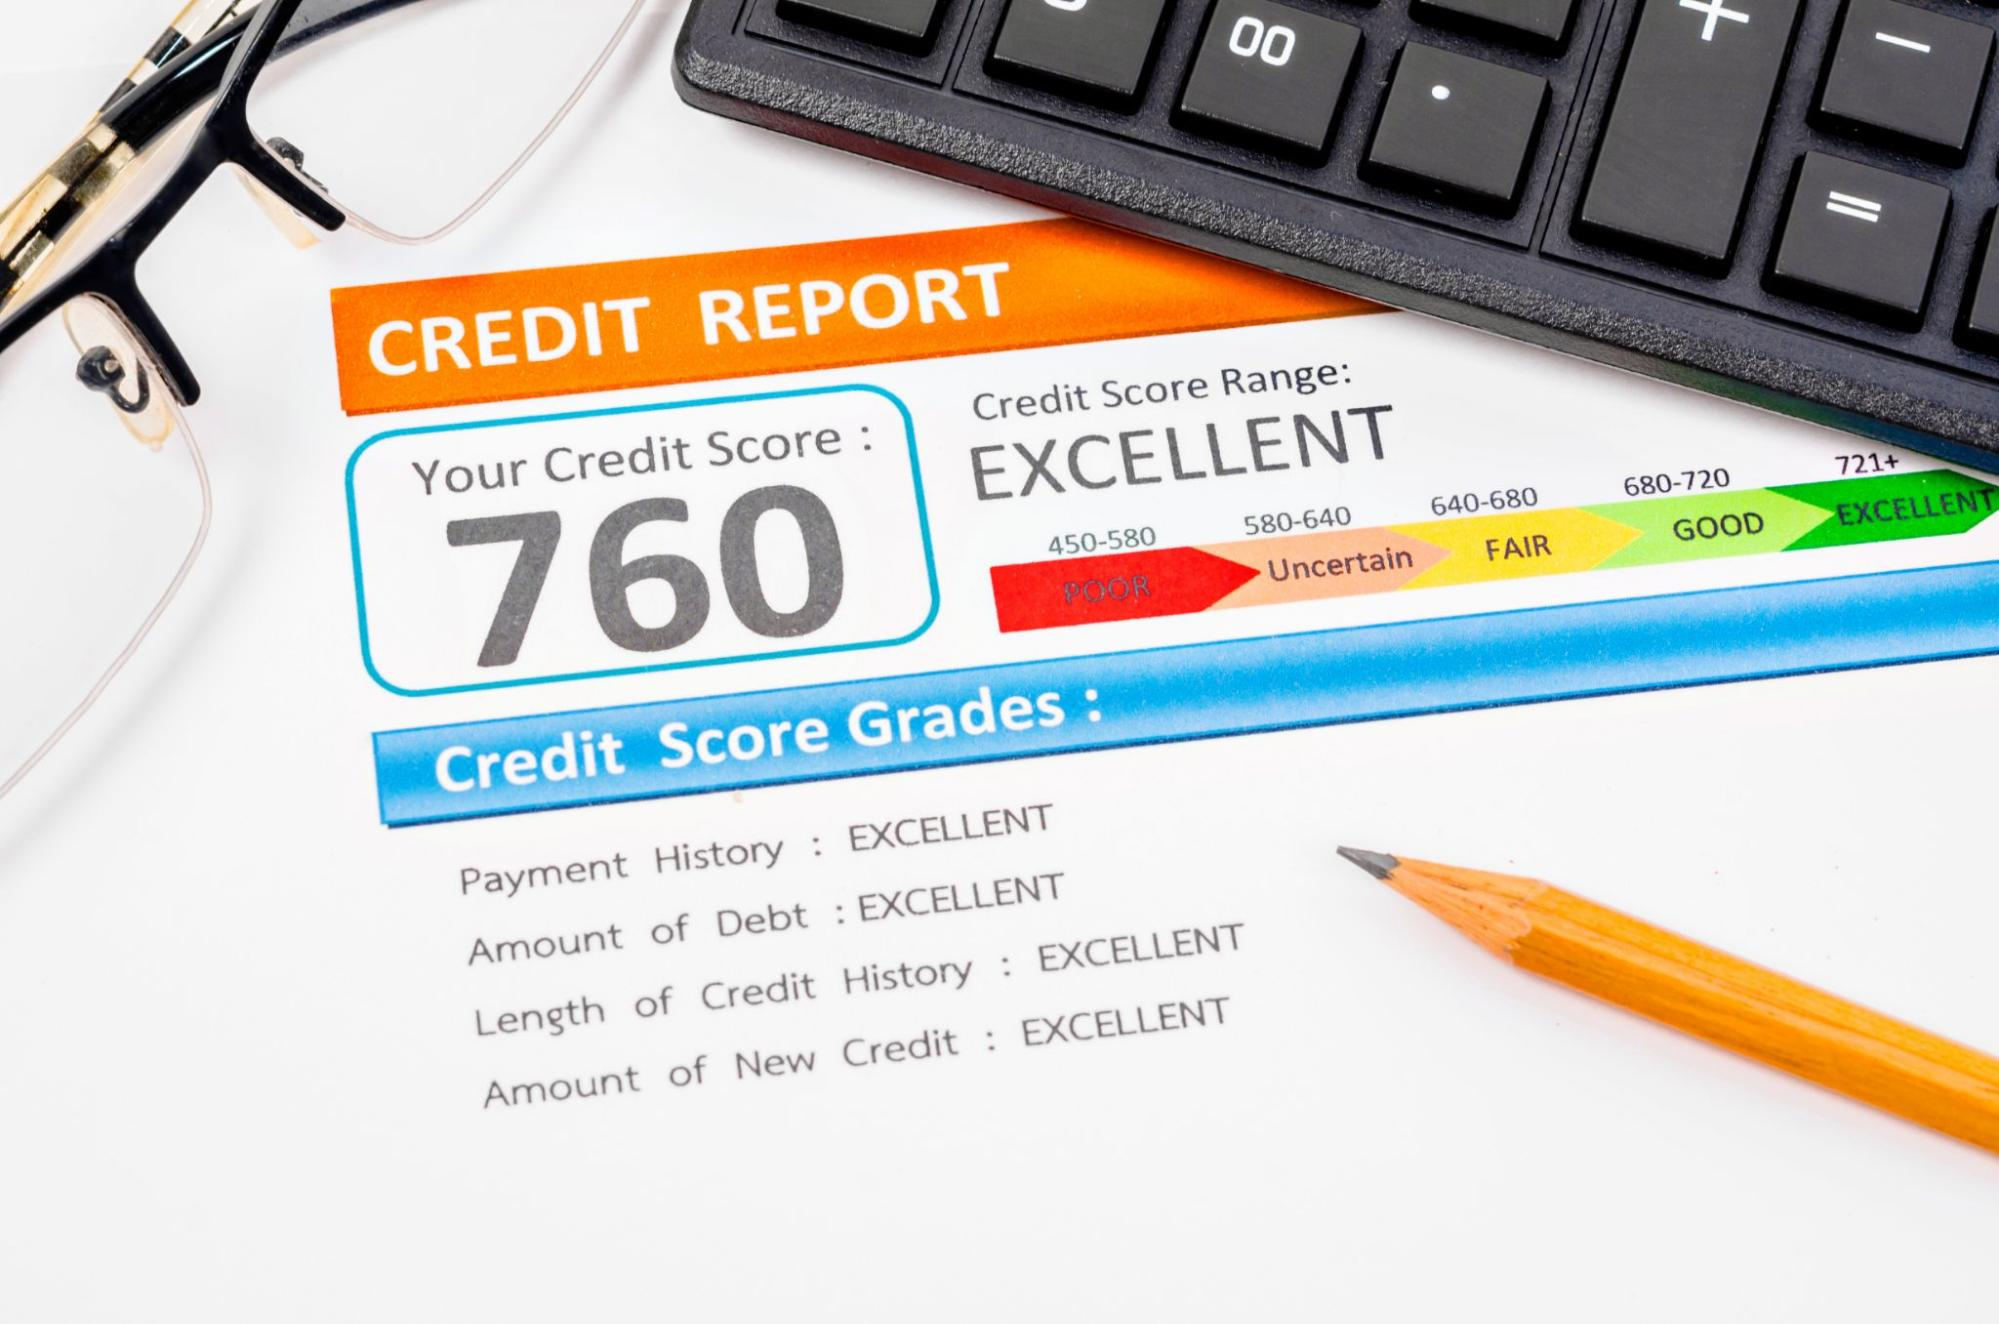 Credit history: A printed credit report sits under a keyboard, a pencil, and a pair of glasses